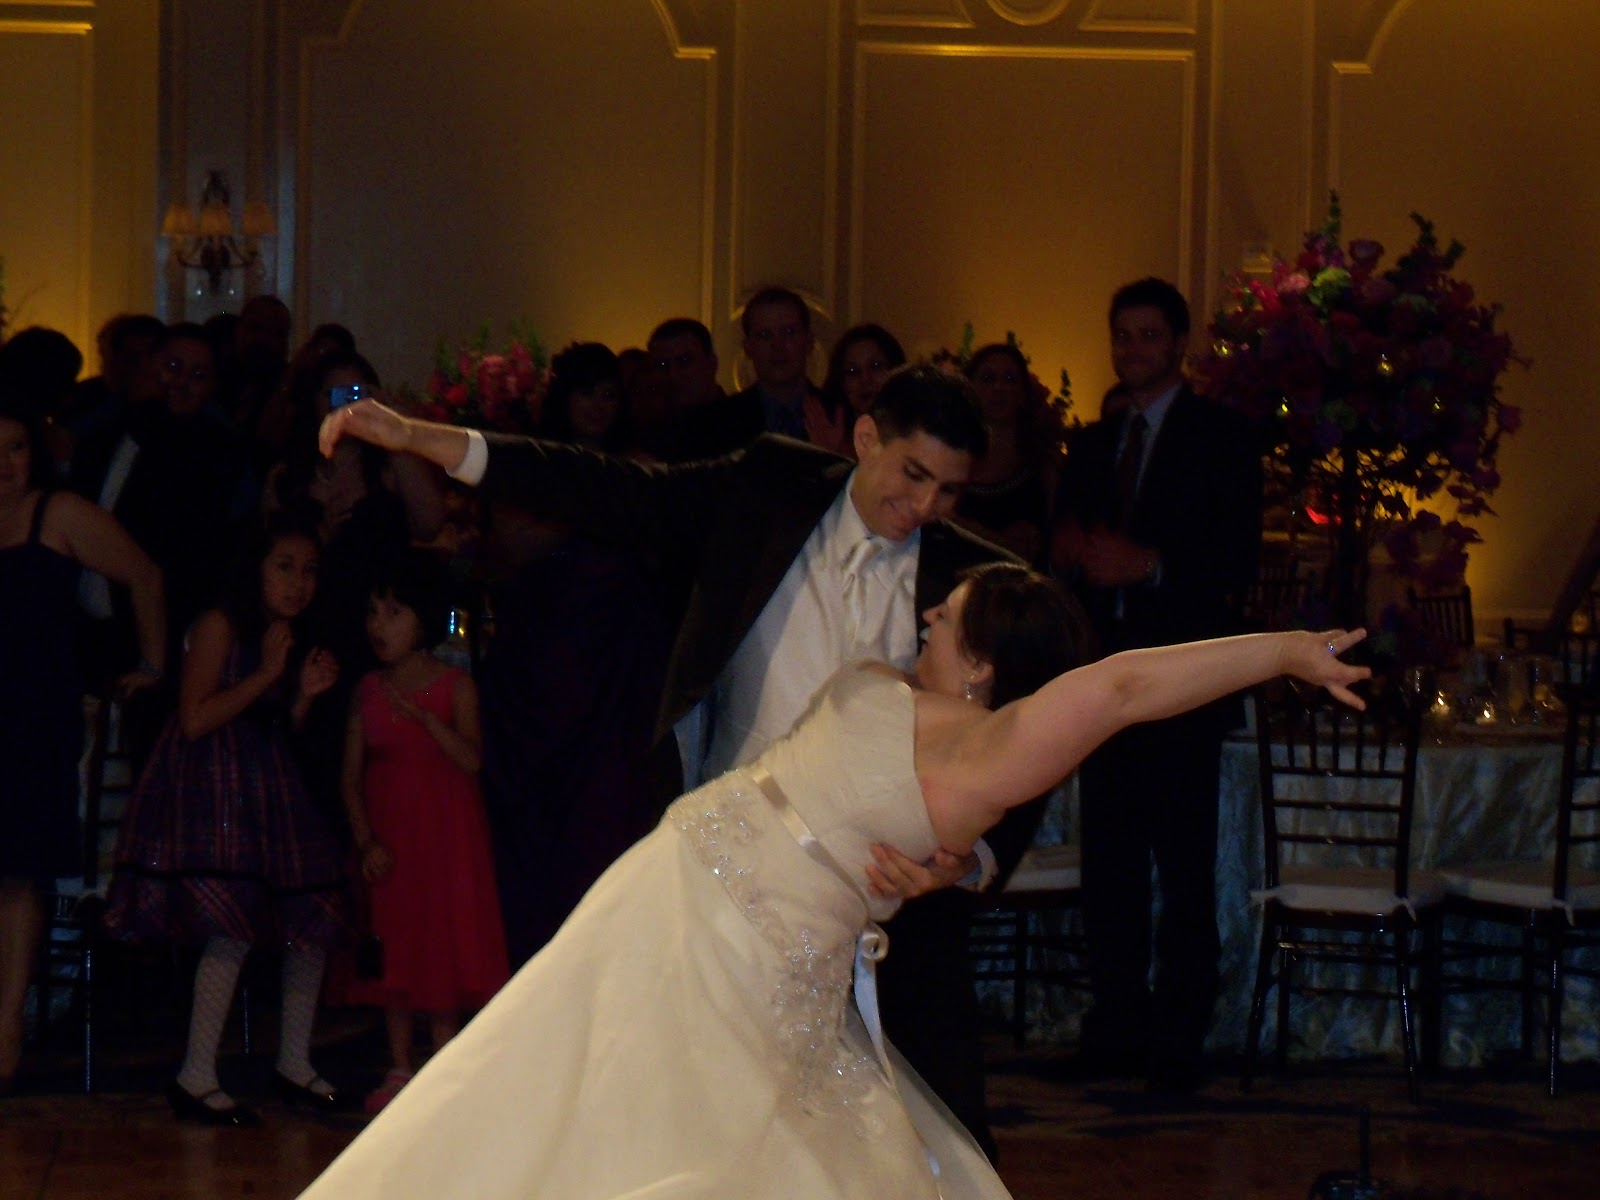 Megan Neal and Mark Suarez wedding - 100_8335.JPG